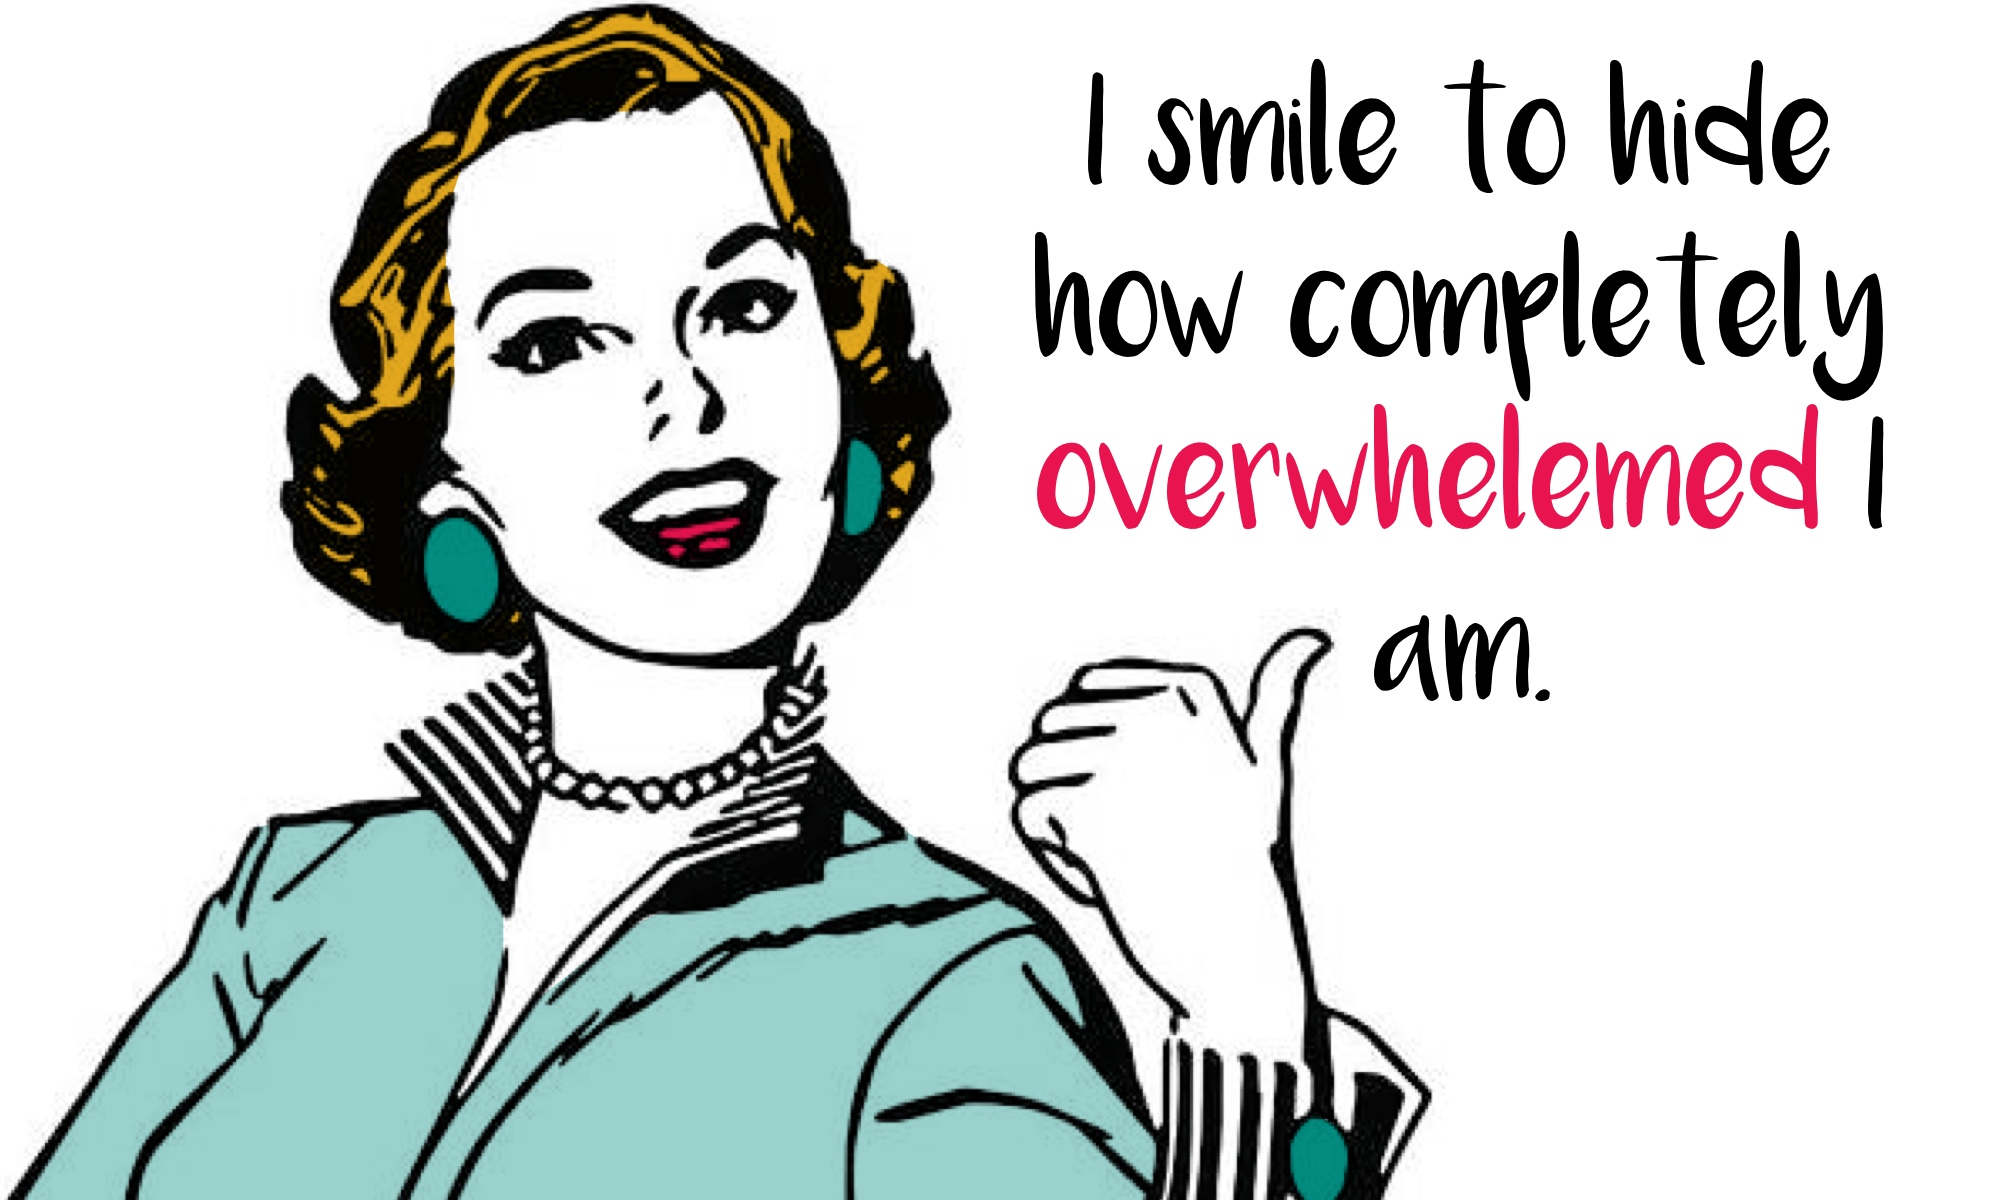 """A vintage 1950s-style lady with a big smile pointing to the words, """"I smile to hide how completely overwhelmed I am."""""""